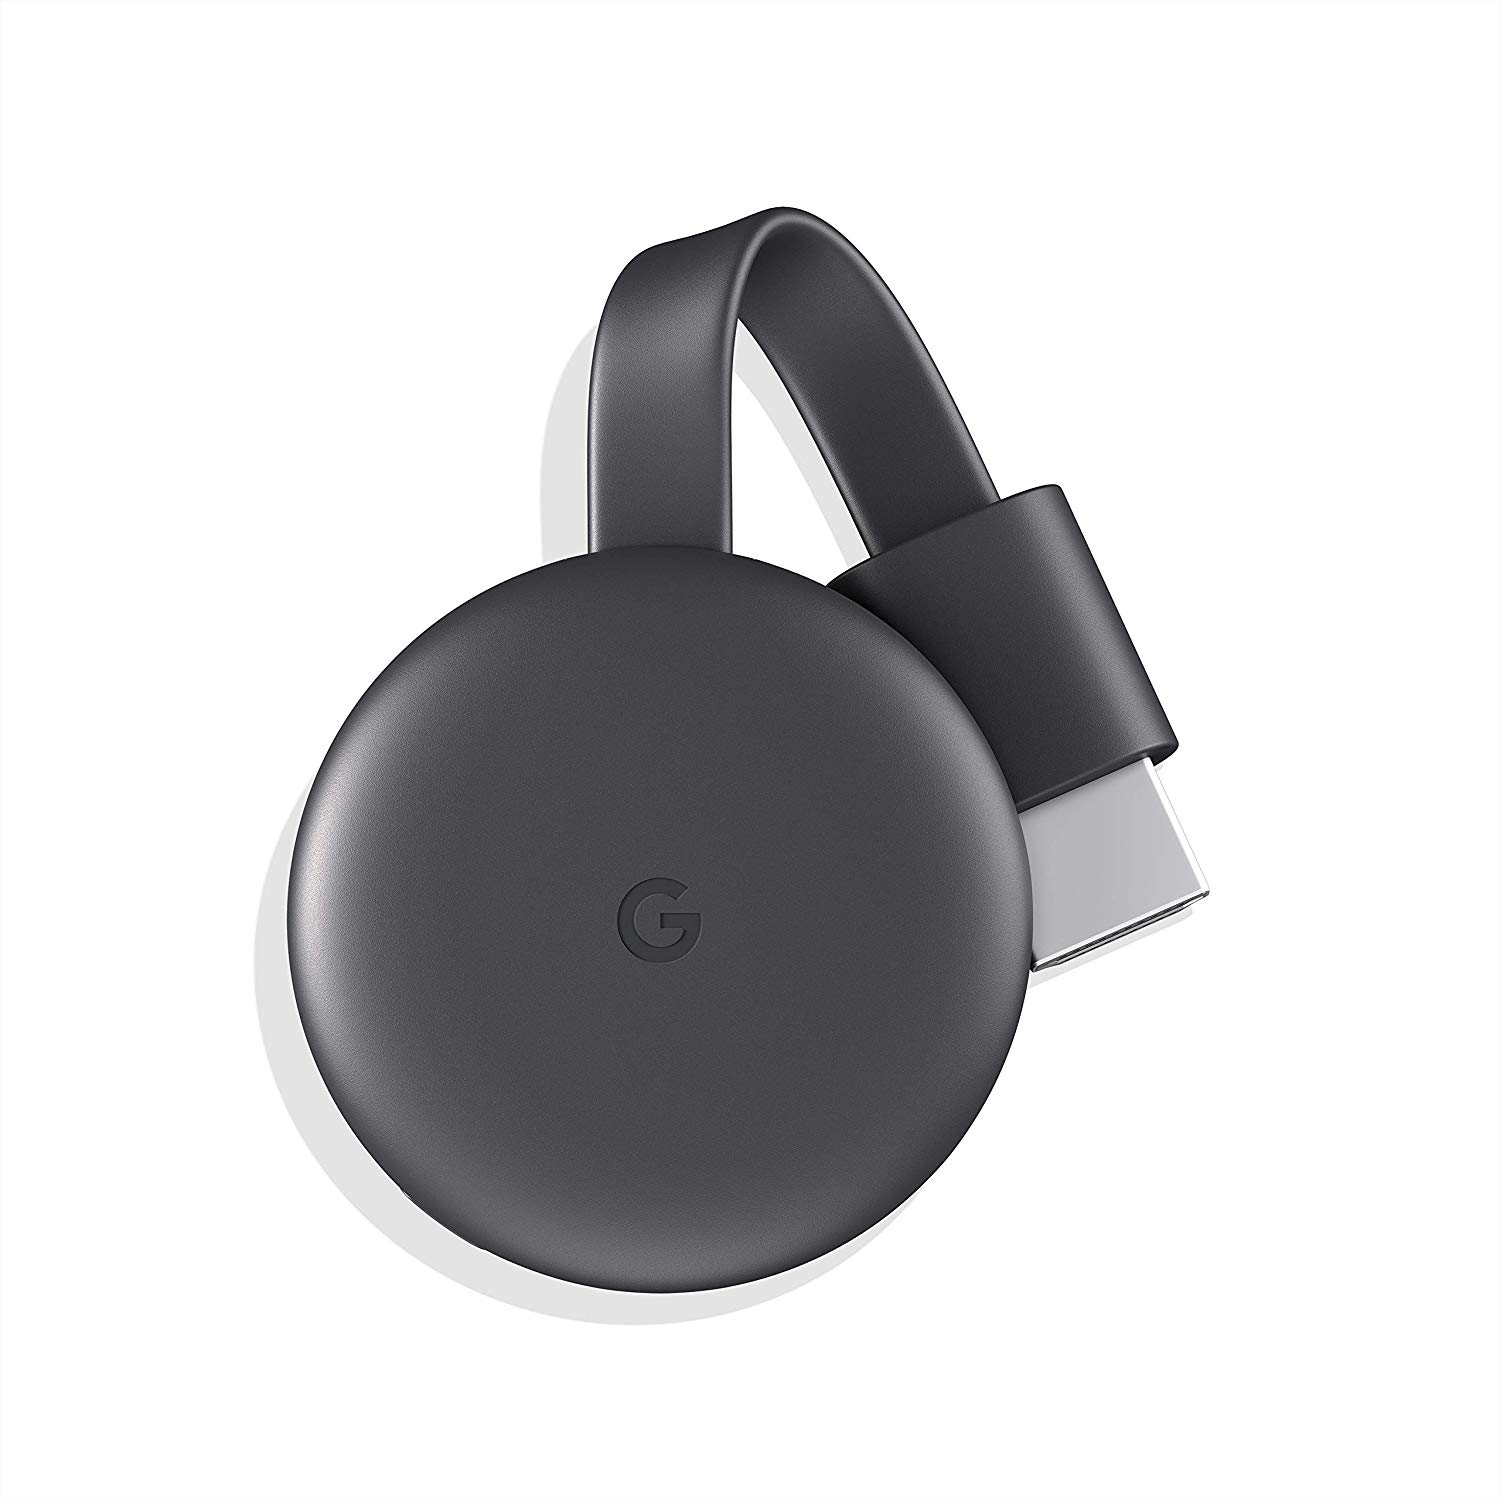 Google Chromecast, Charcoal, GA00439-US